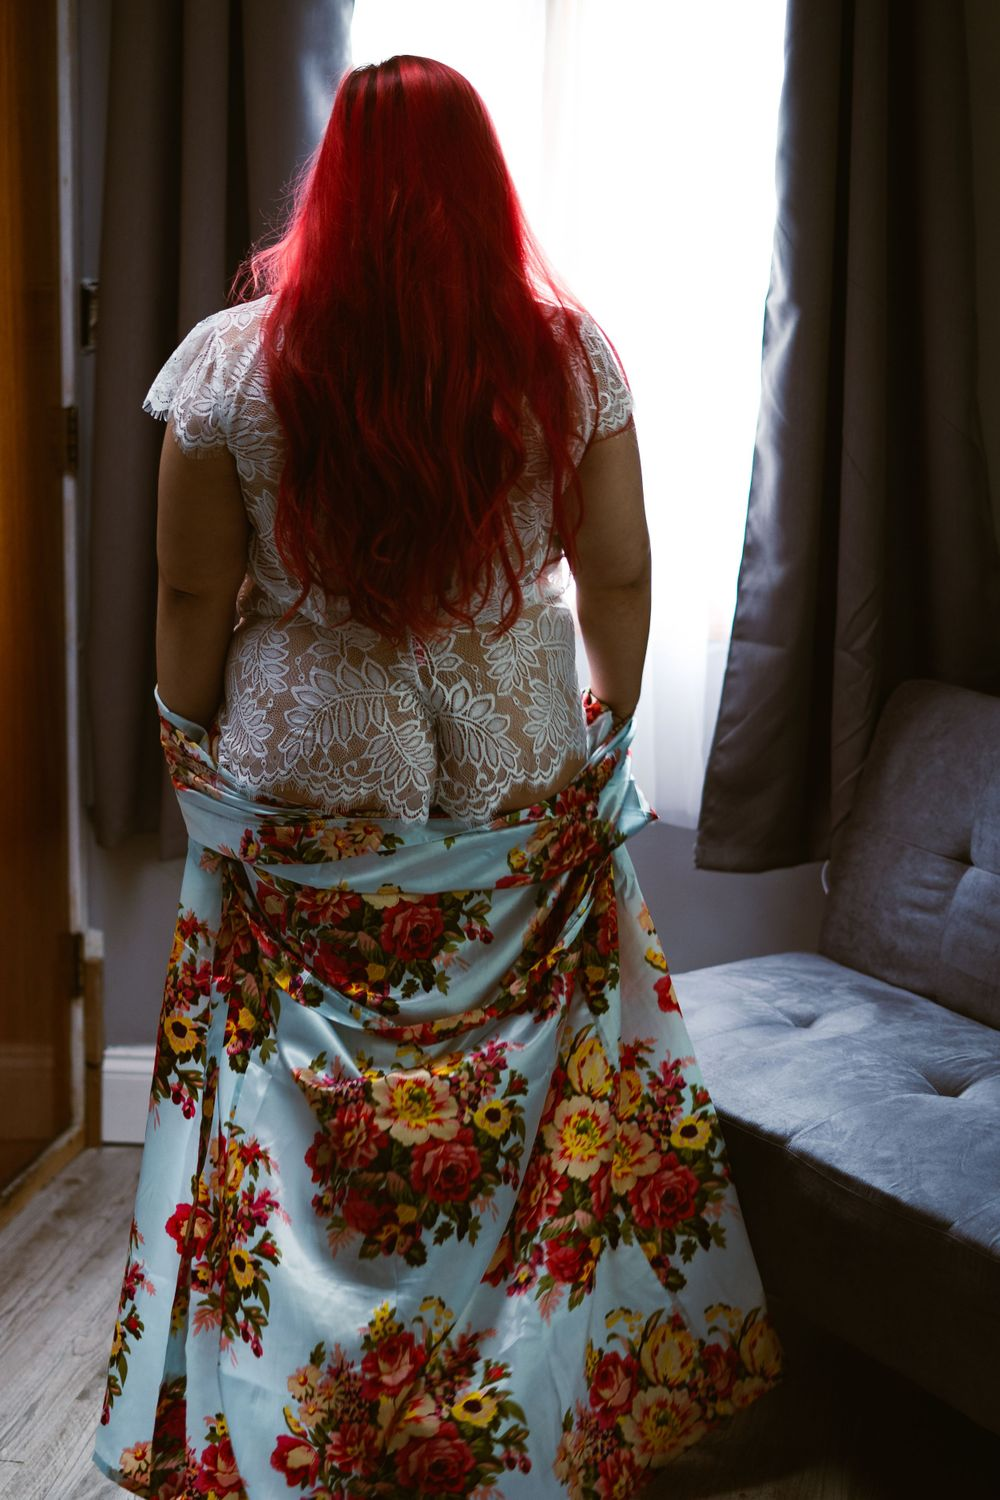 woman in bridal lingerie and floral bathrobe looking out the window, in a sexy pose with the robe framing her butt